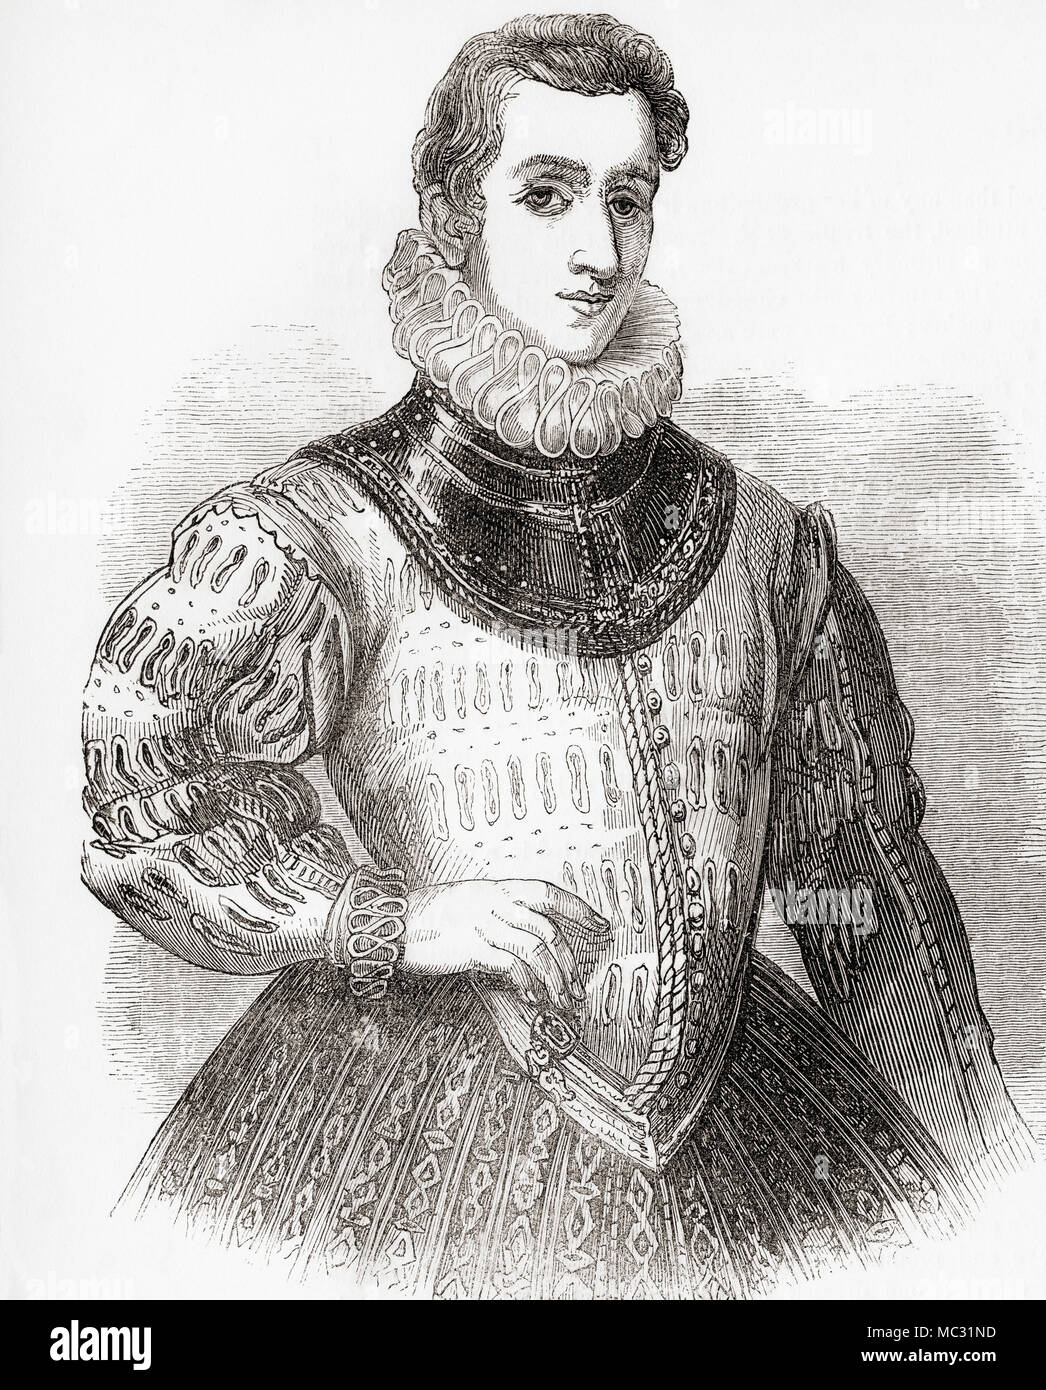 Sir Philip Sidney, 1554 – 1586.  English poet, courtier, scholar and soldier.  From Old England: A Pictorial Museum, published 1847. - Stock Image